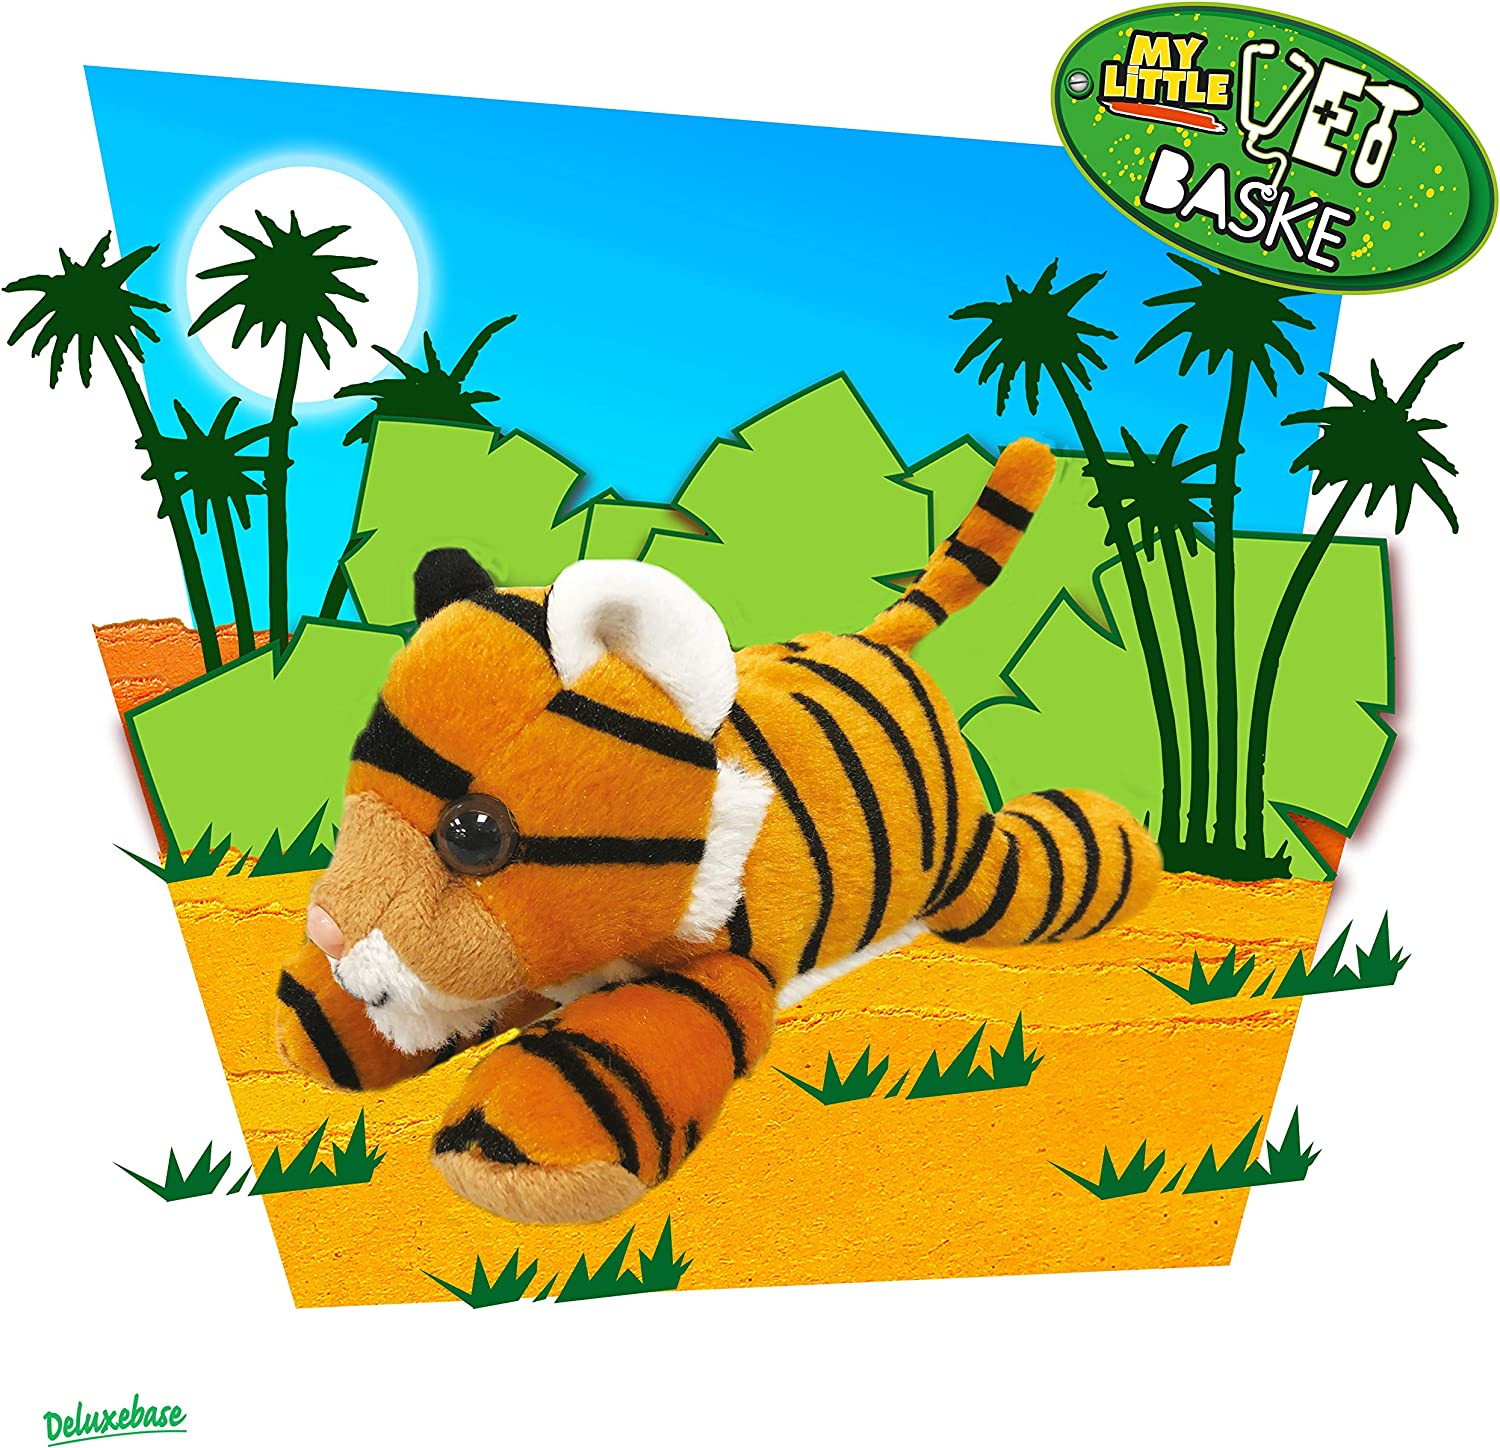 Vet Doctors Toy Set for Kids A cute animal set that is ideal for pretend play Baby Tiger Set from Deluxebase My Little Vet Basket